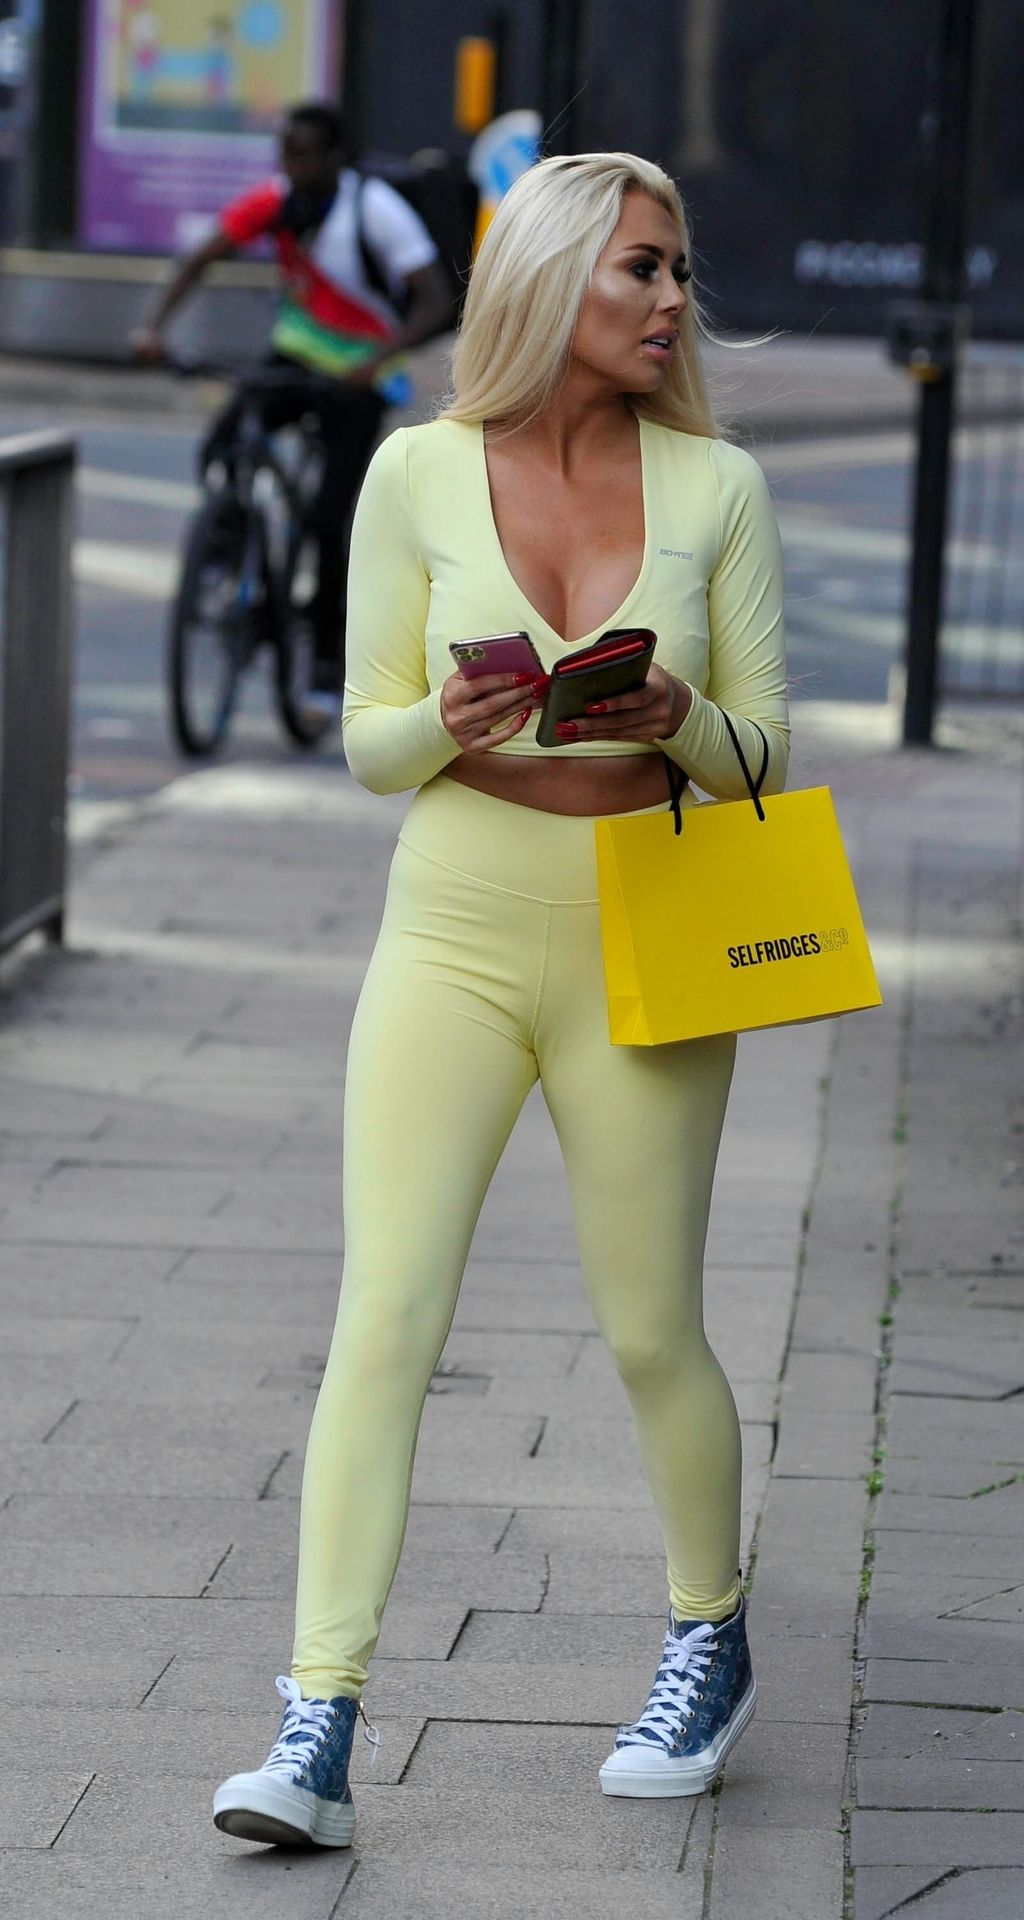 Sexy Shannen Reilly McGrath Is Spotted in Manchester (13 Photos)